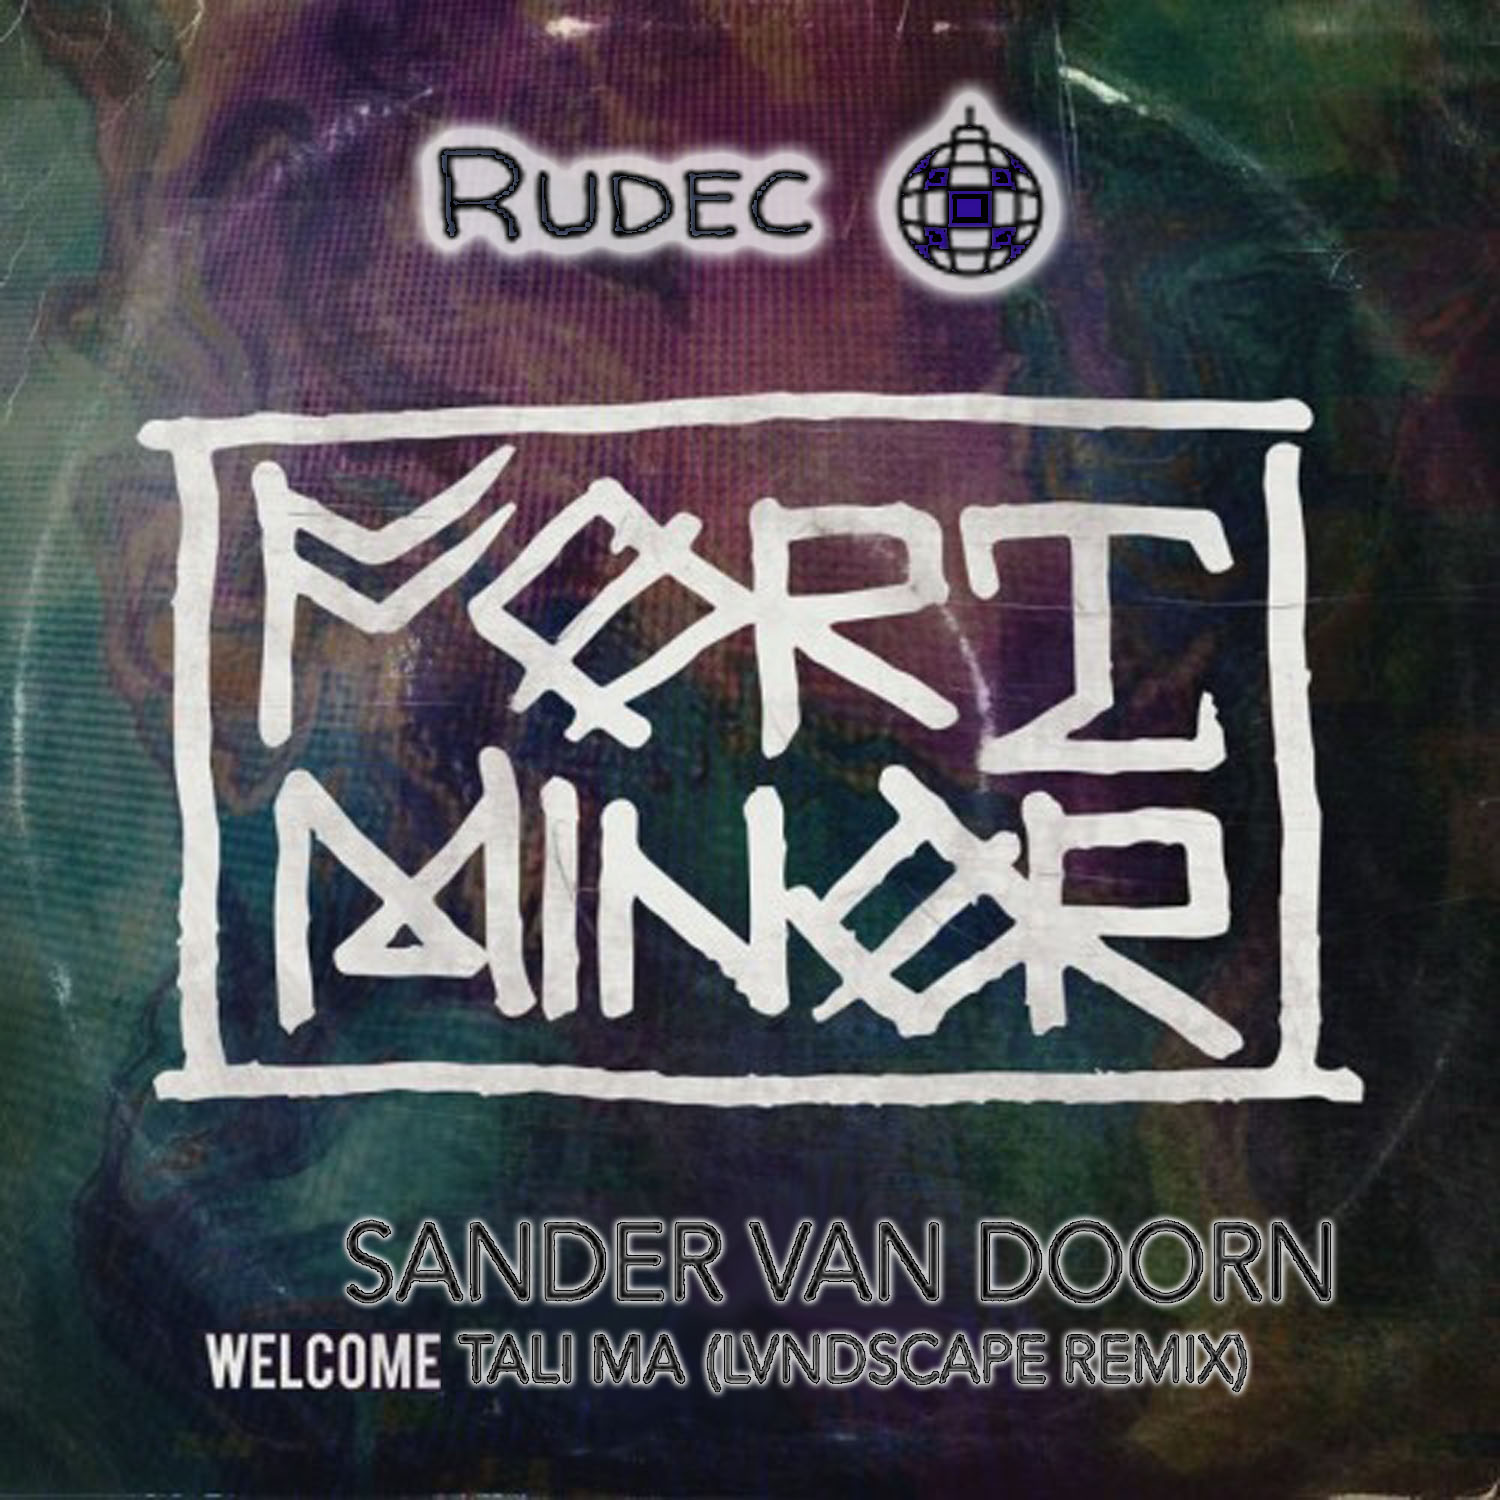 Fort Minor - Welcome (but it's playing Sander Van Doorn - Ori Tali Ma (LVNDSCAPE Remix))